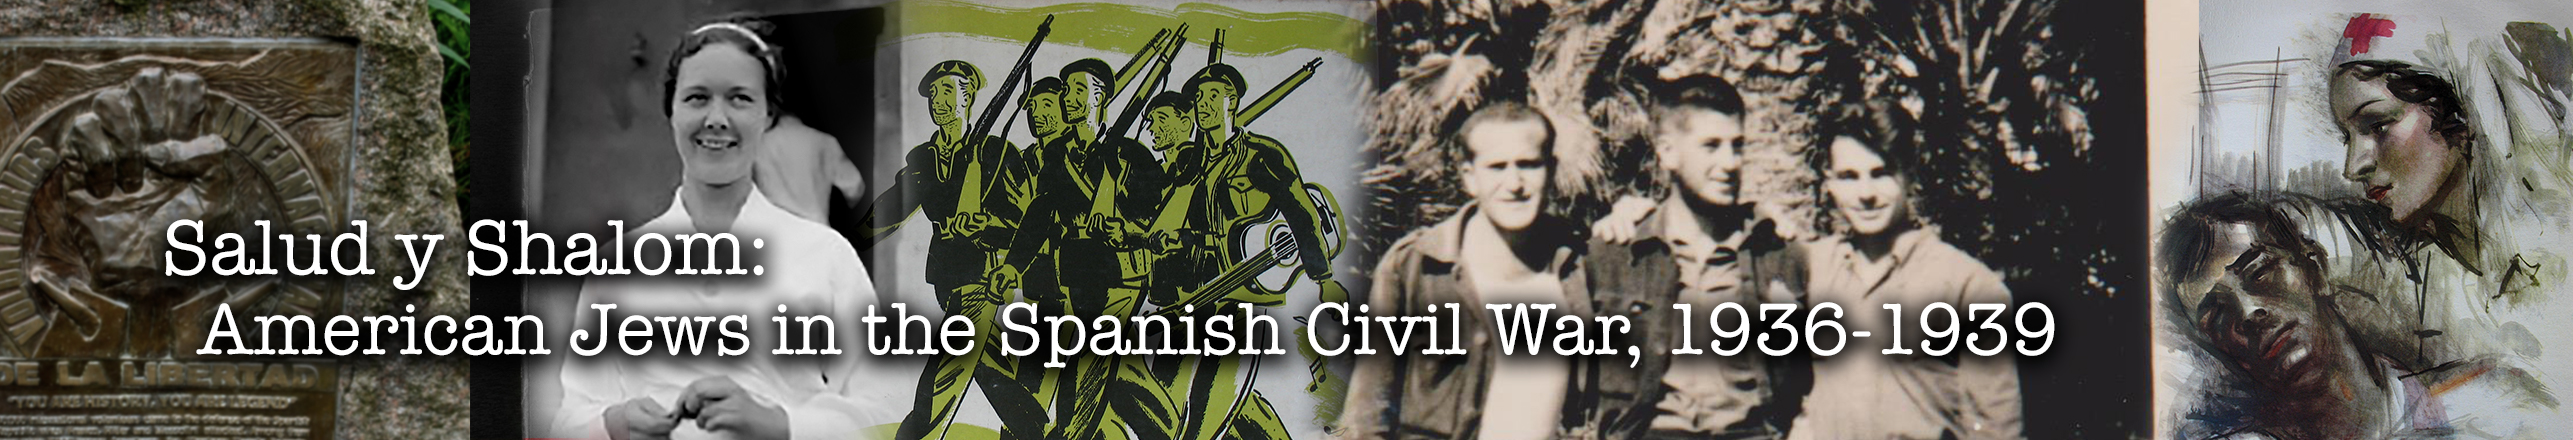 Salud y Shalom: Americans Jews in the Spanish Civil War